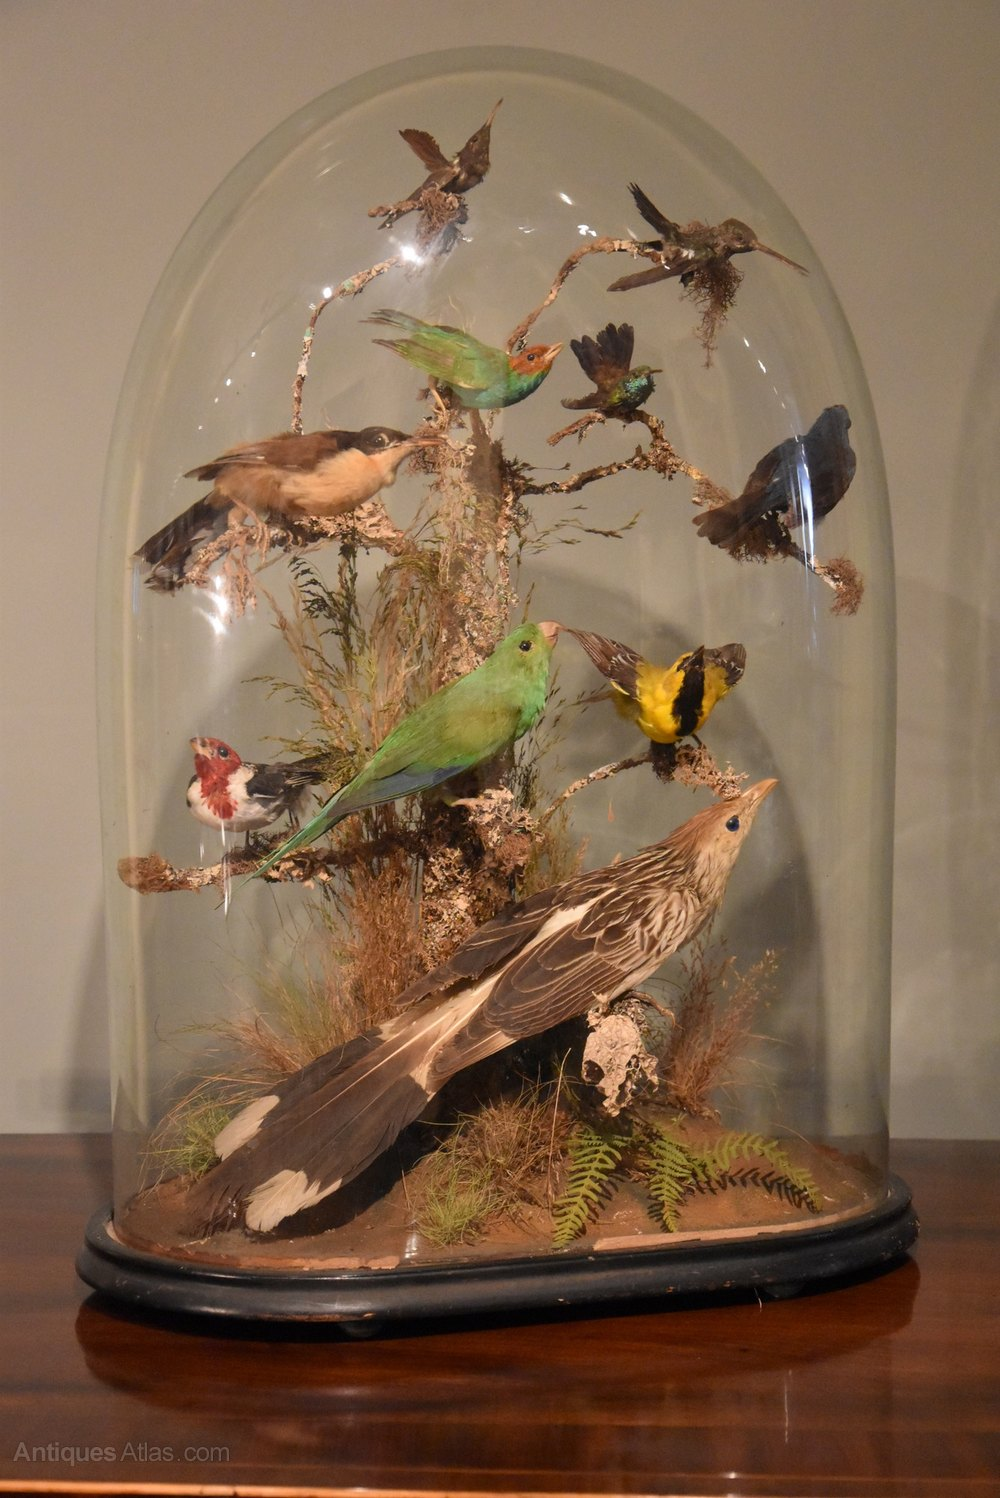 A Collection Of The Most: A Collection Of Tropical Birds Under A